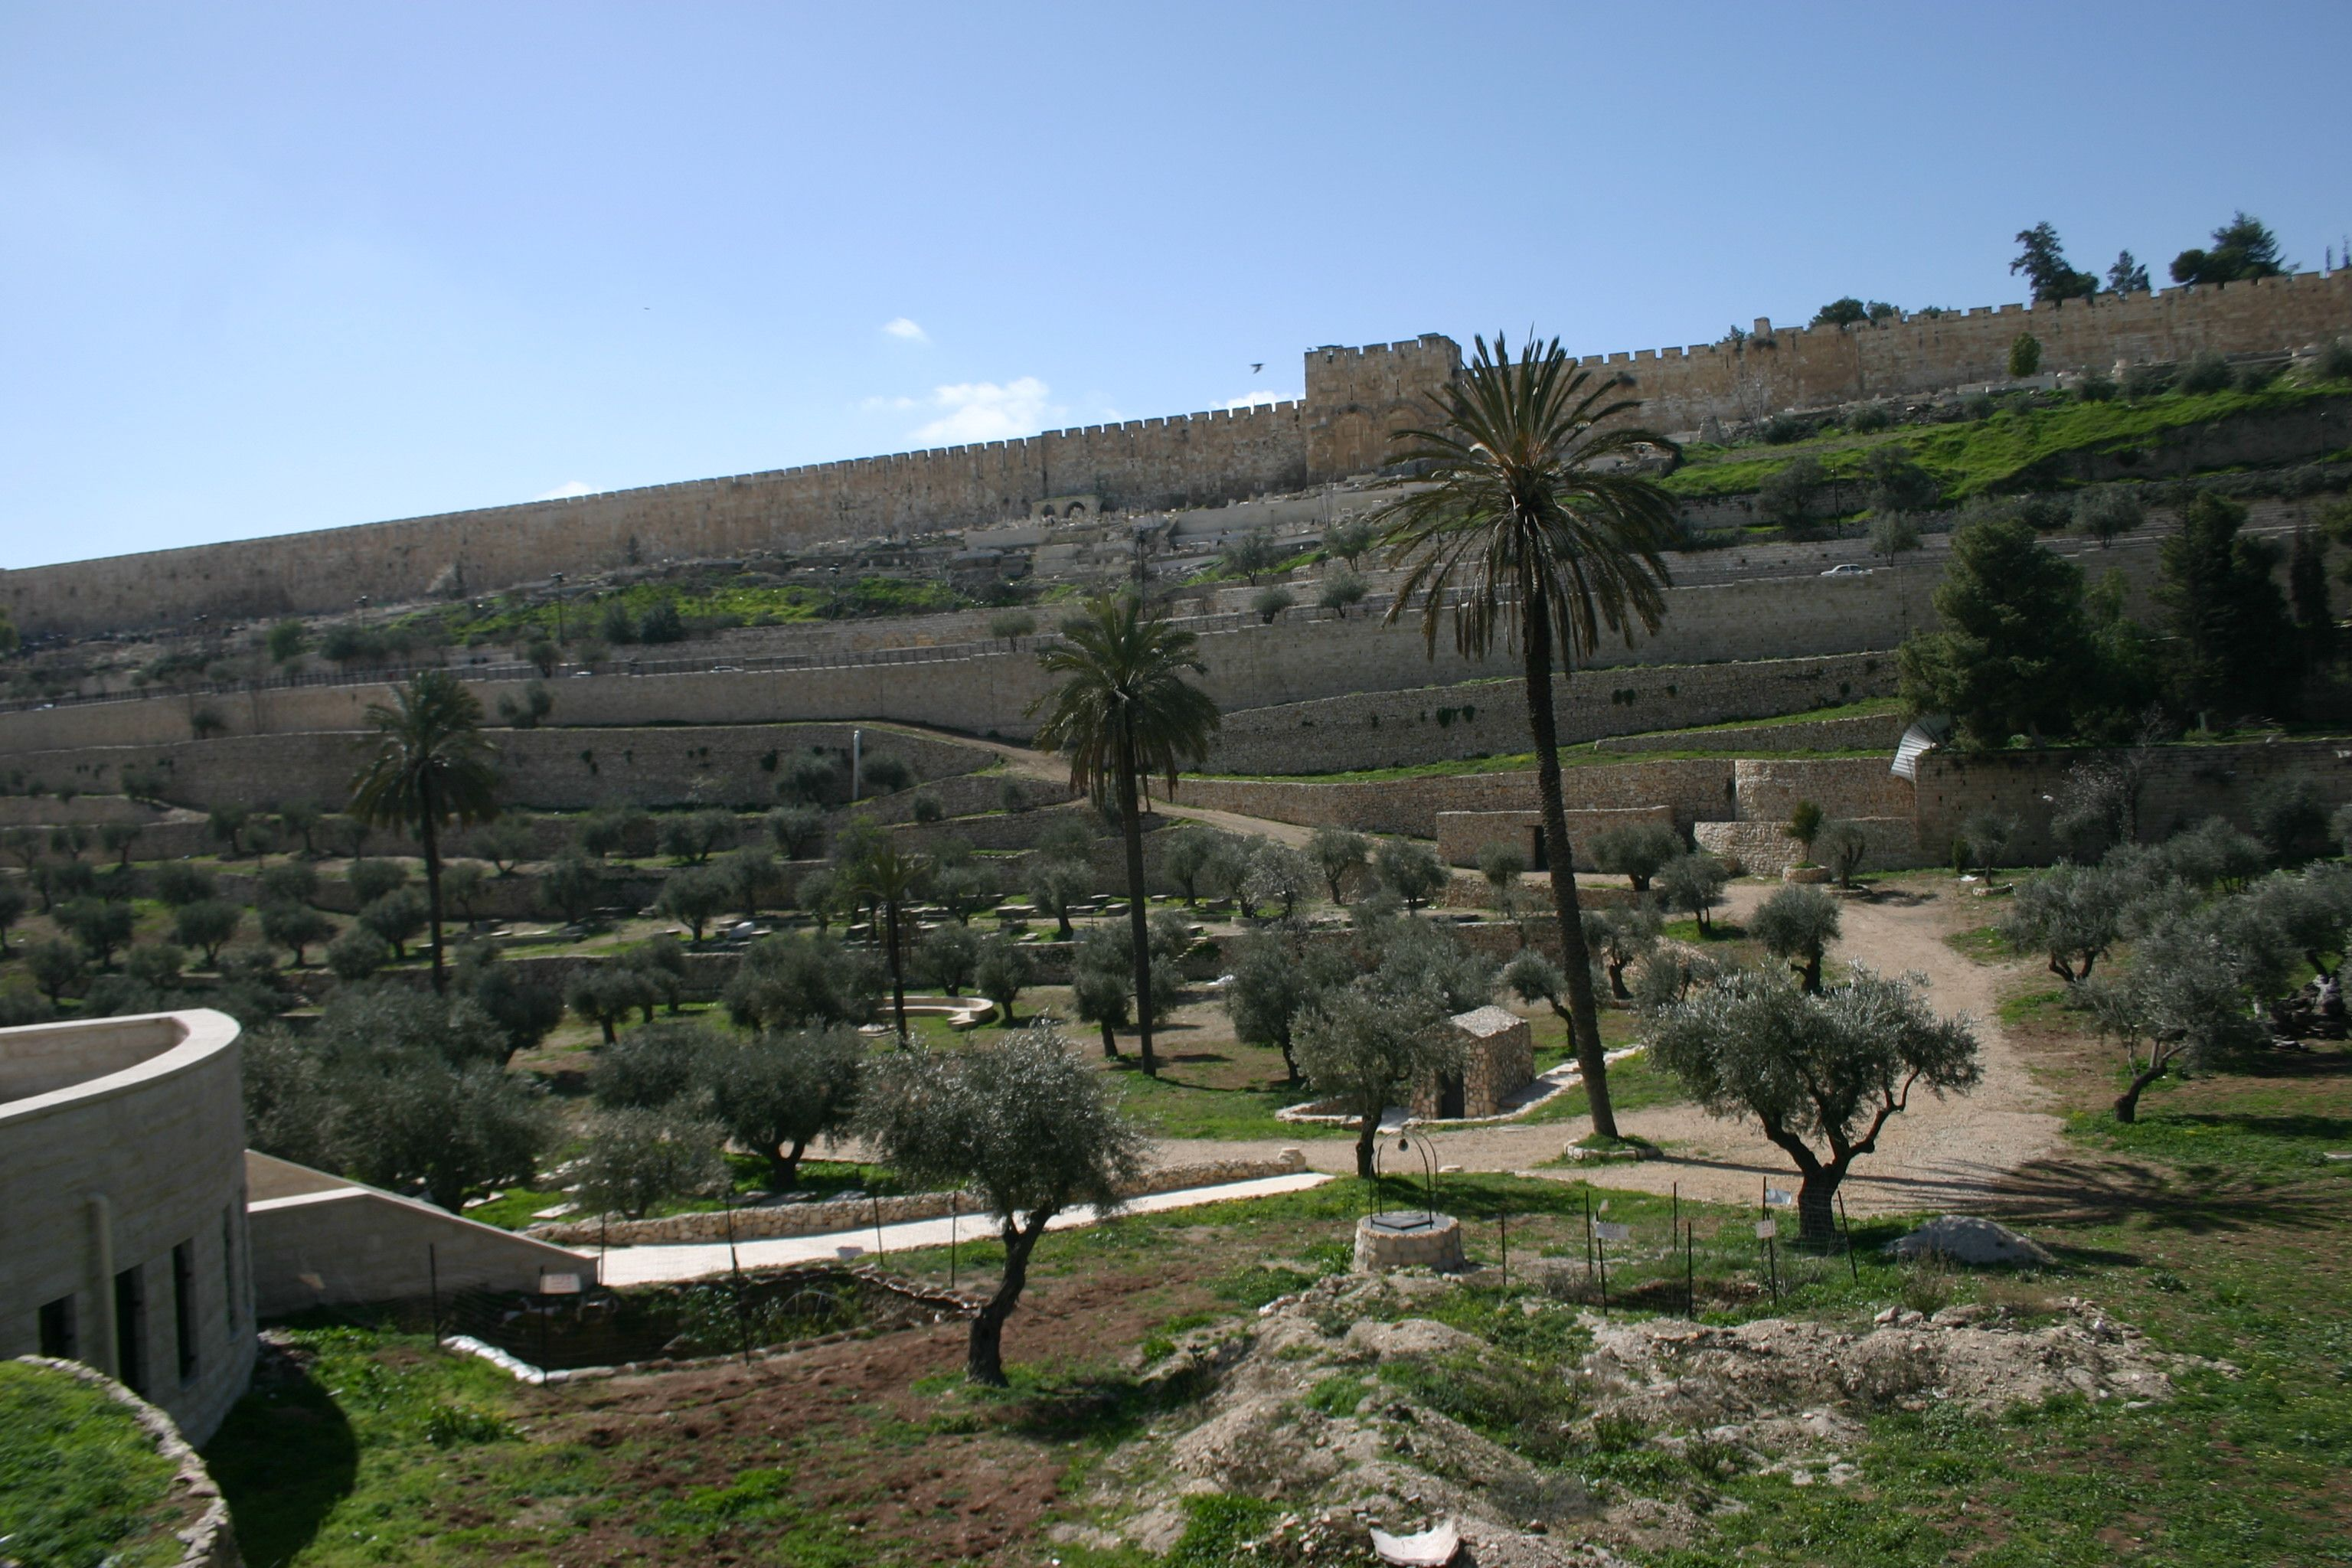 Retrace the steps of Christ after his arrest in the Garden of Gethsemene and through the Kidron Valley